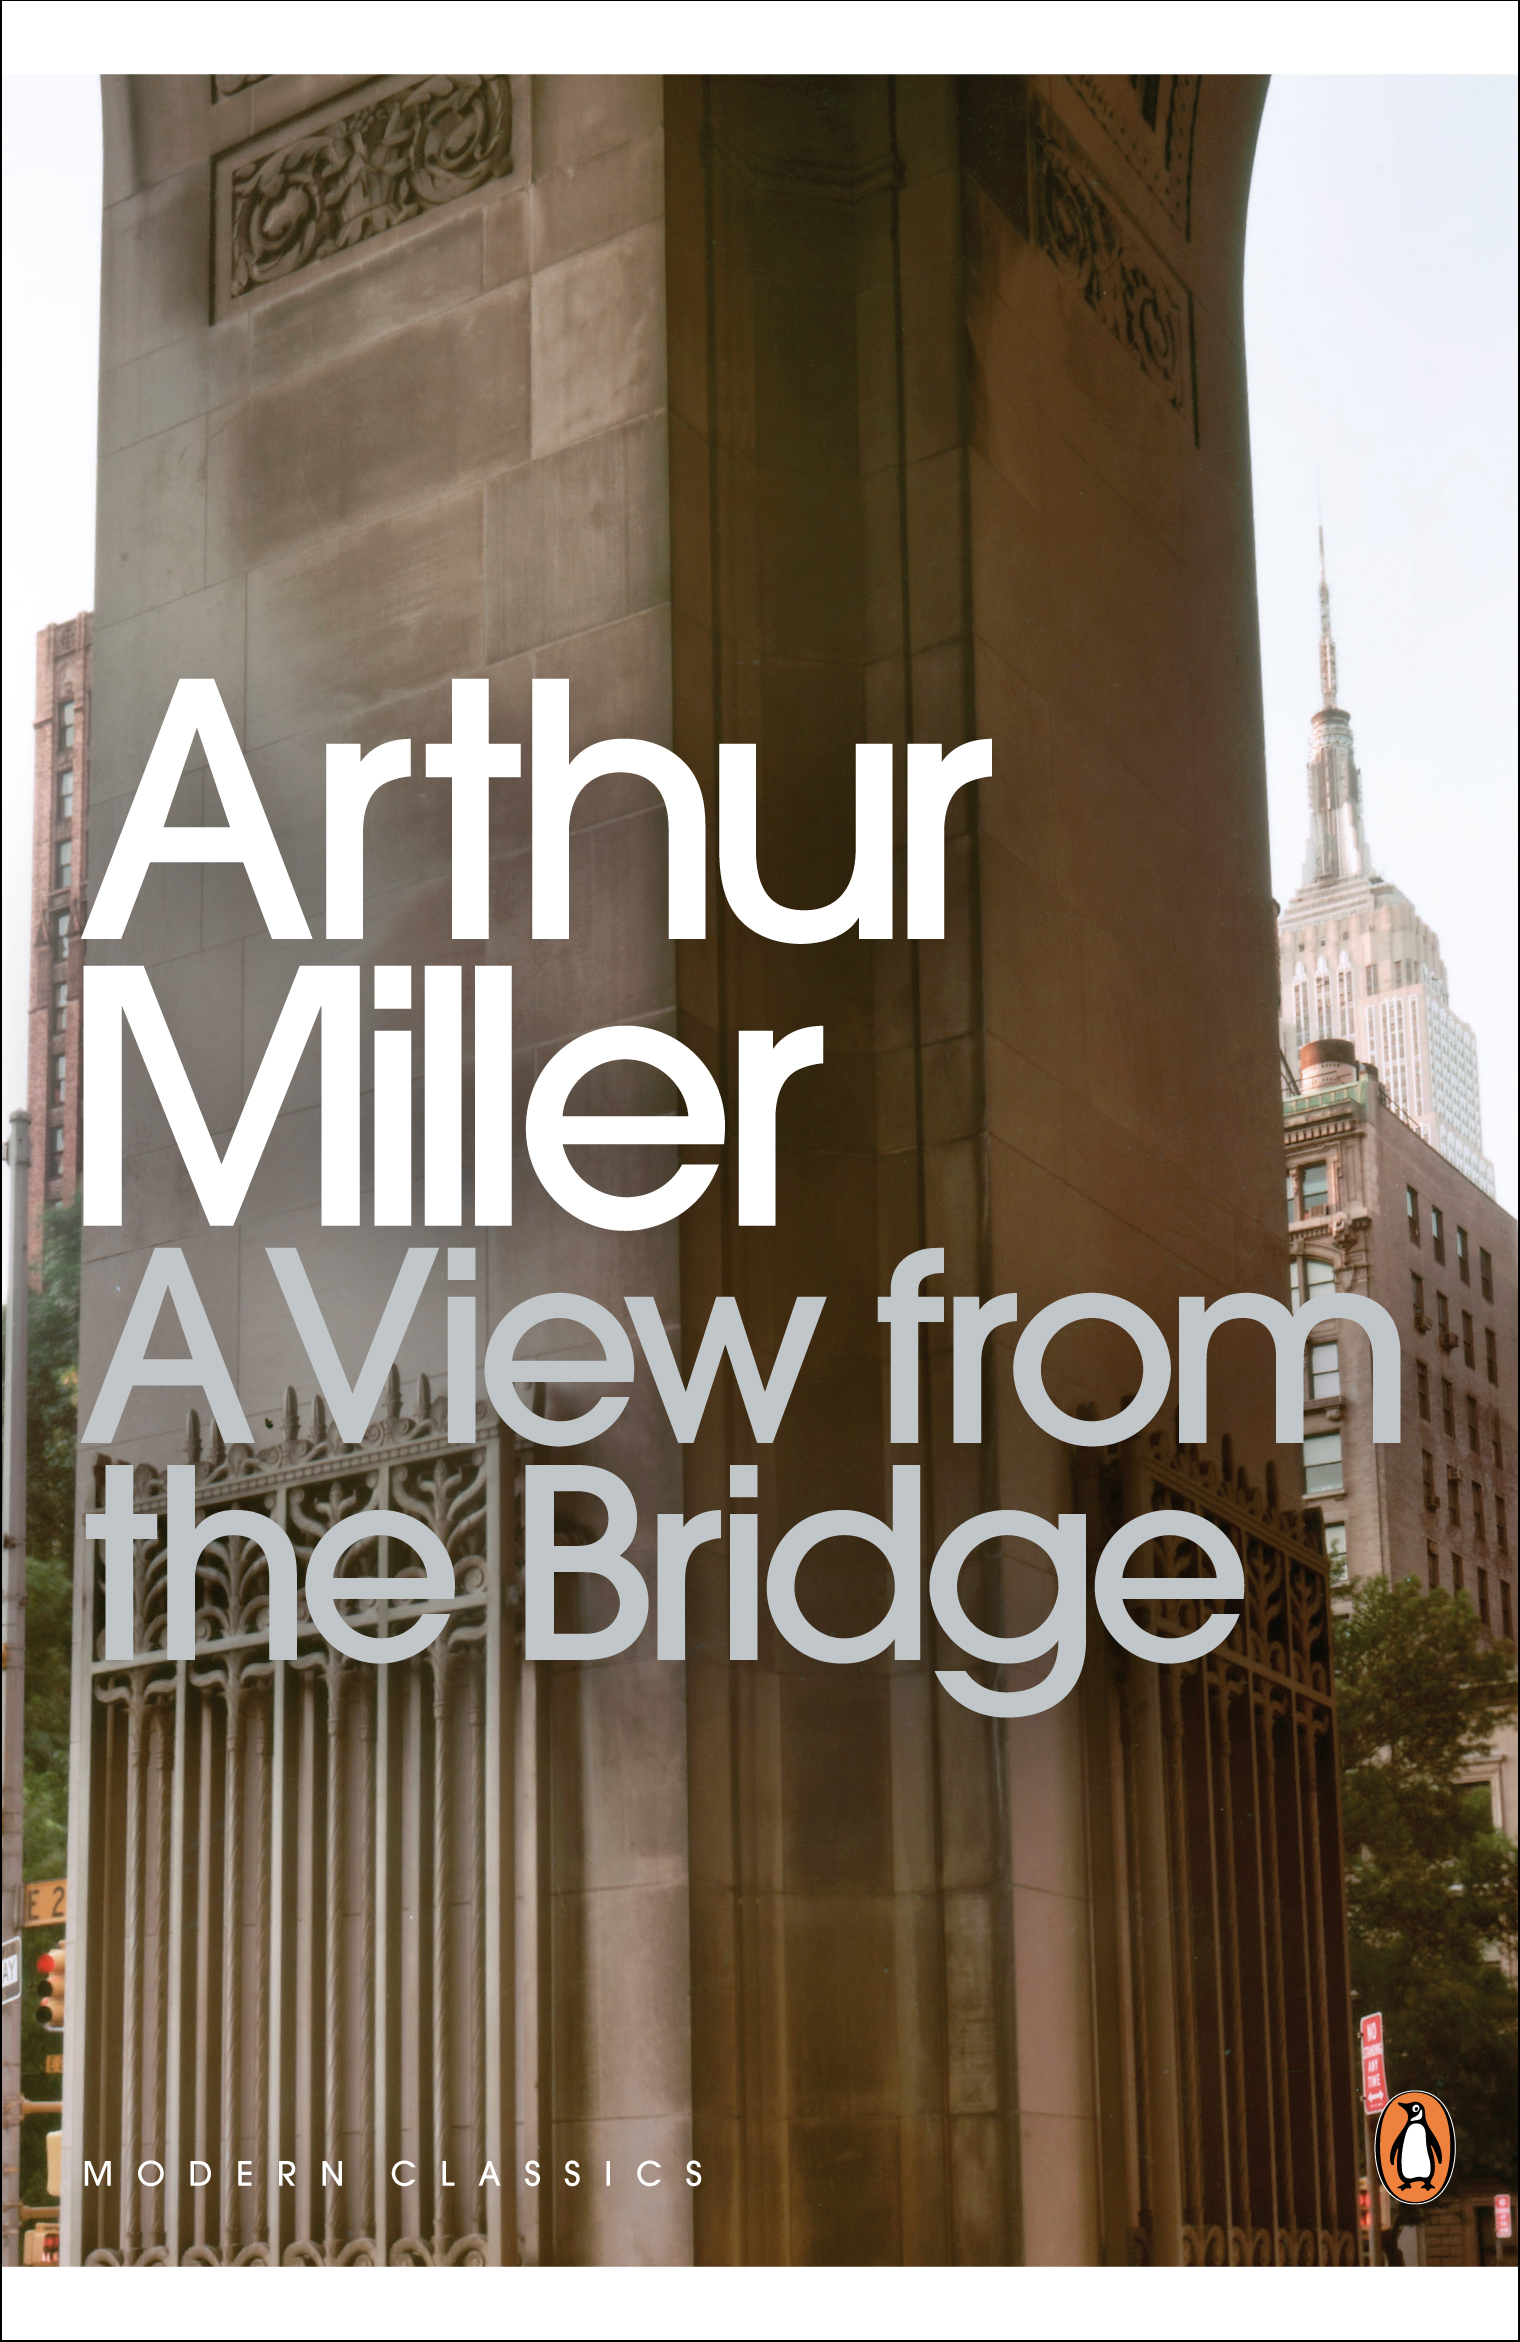 A View from the Bridge by Miller Arthur, ISBN: 9780141189963